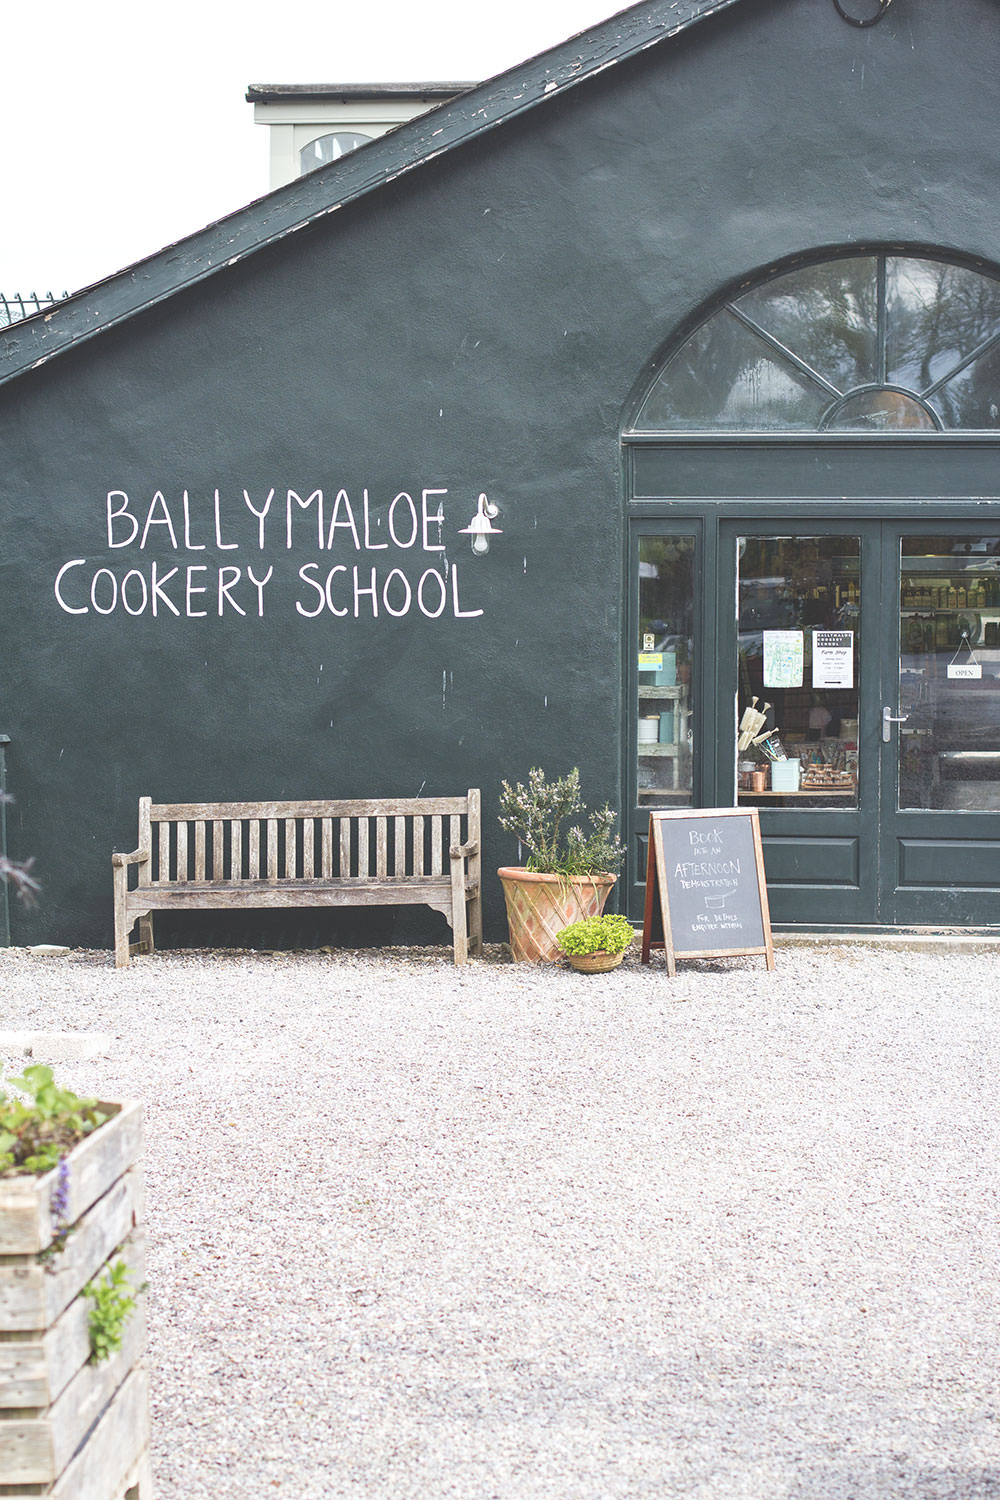 Reise durch Irland mit Kerrygold, Bord Bia und Tourism Ireland: Vom English Market in Cork bis zur Ballymaloe Cookery School